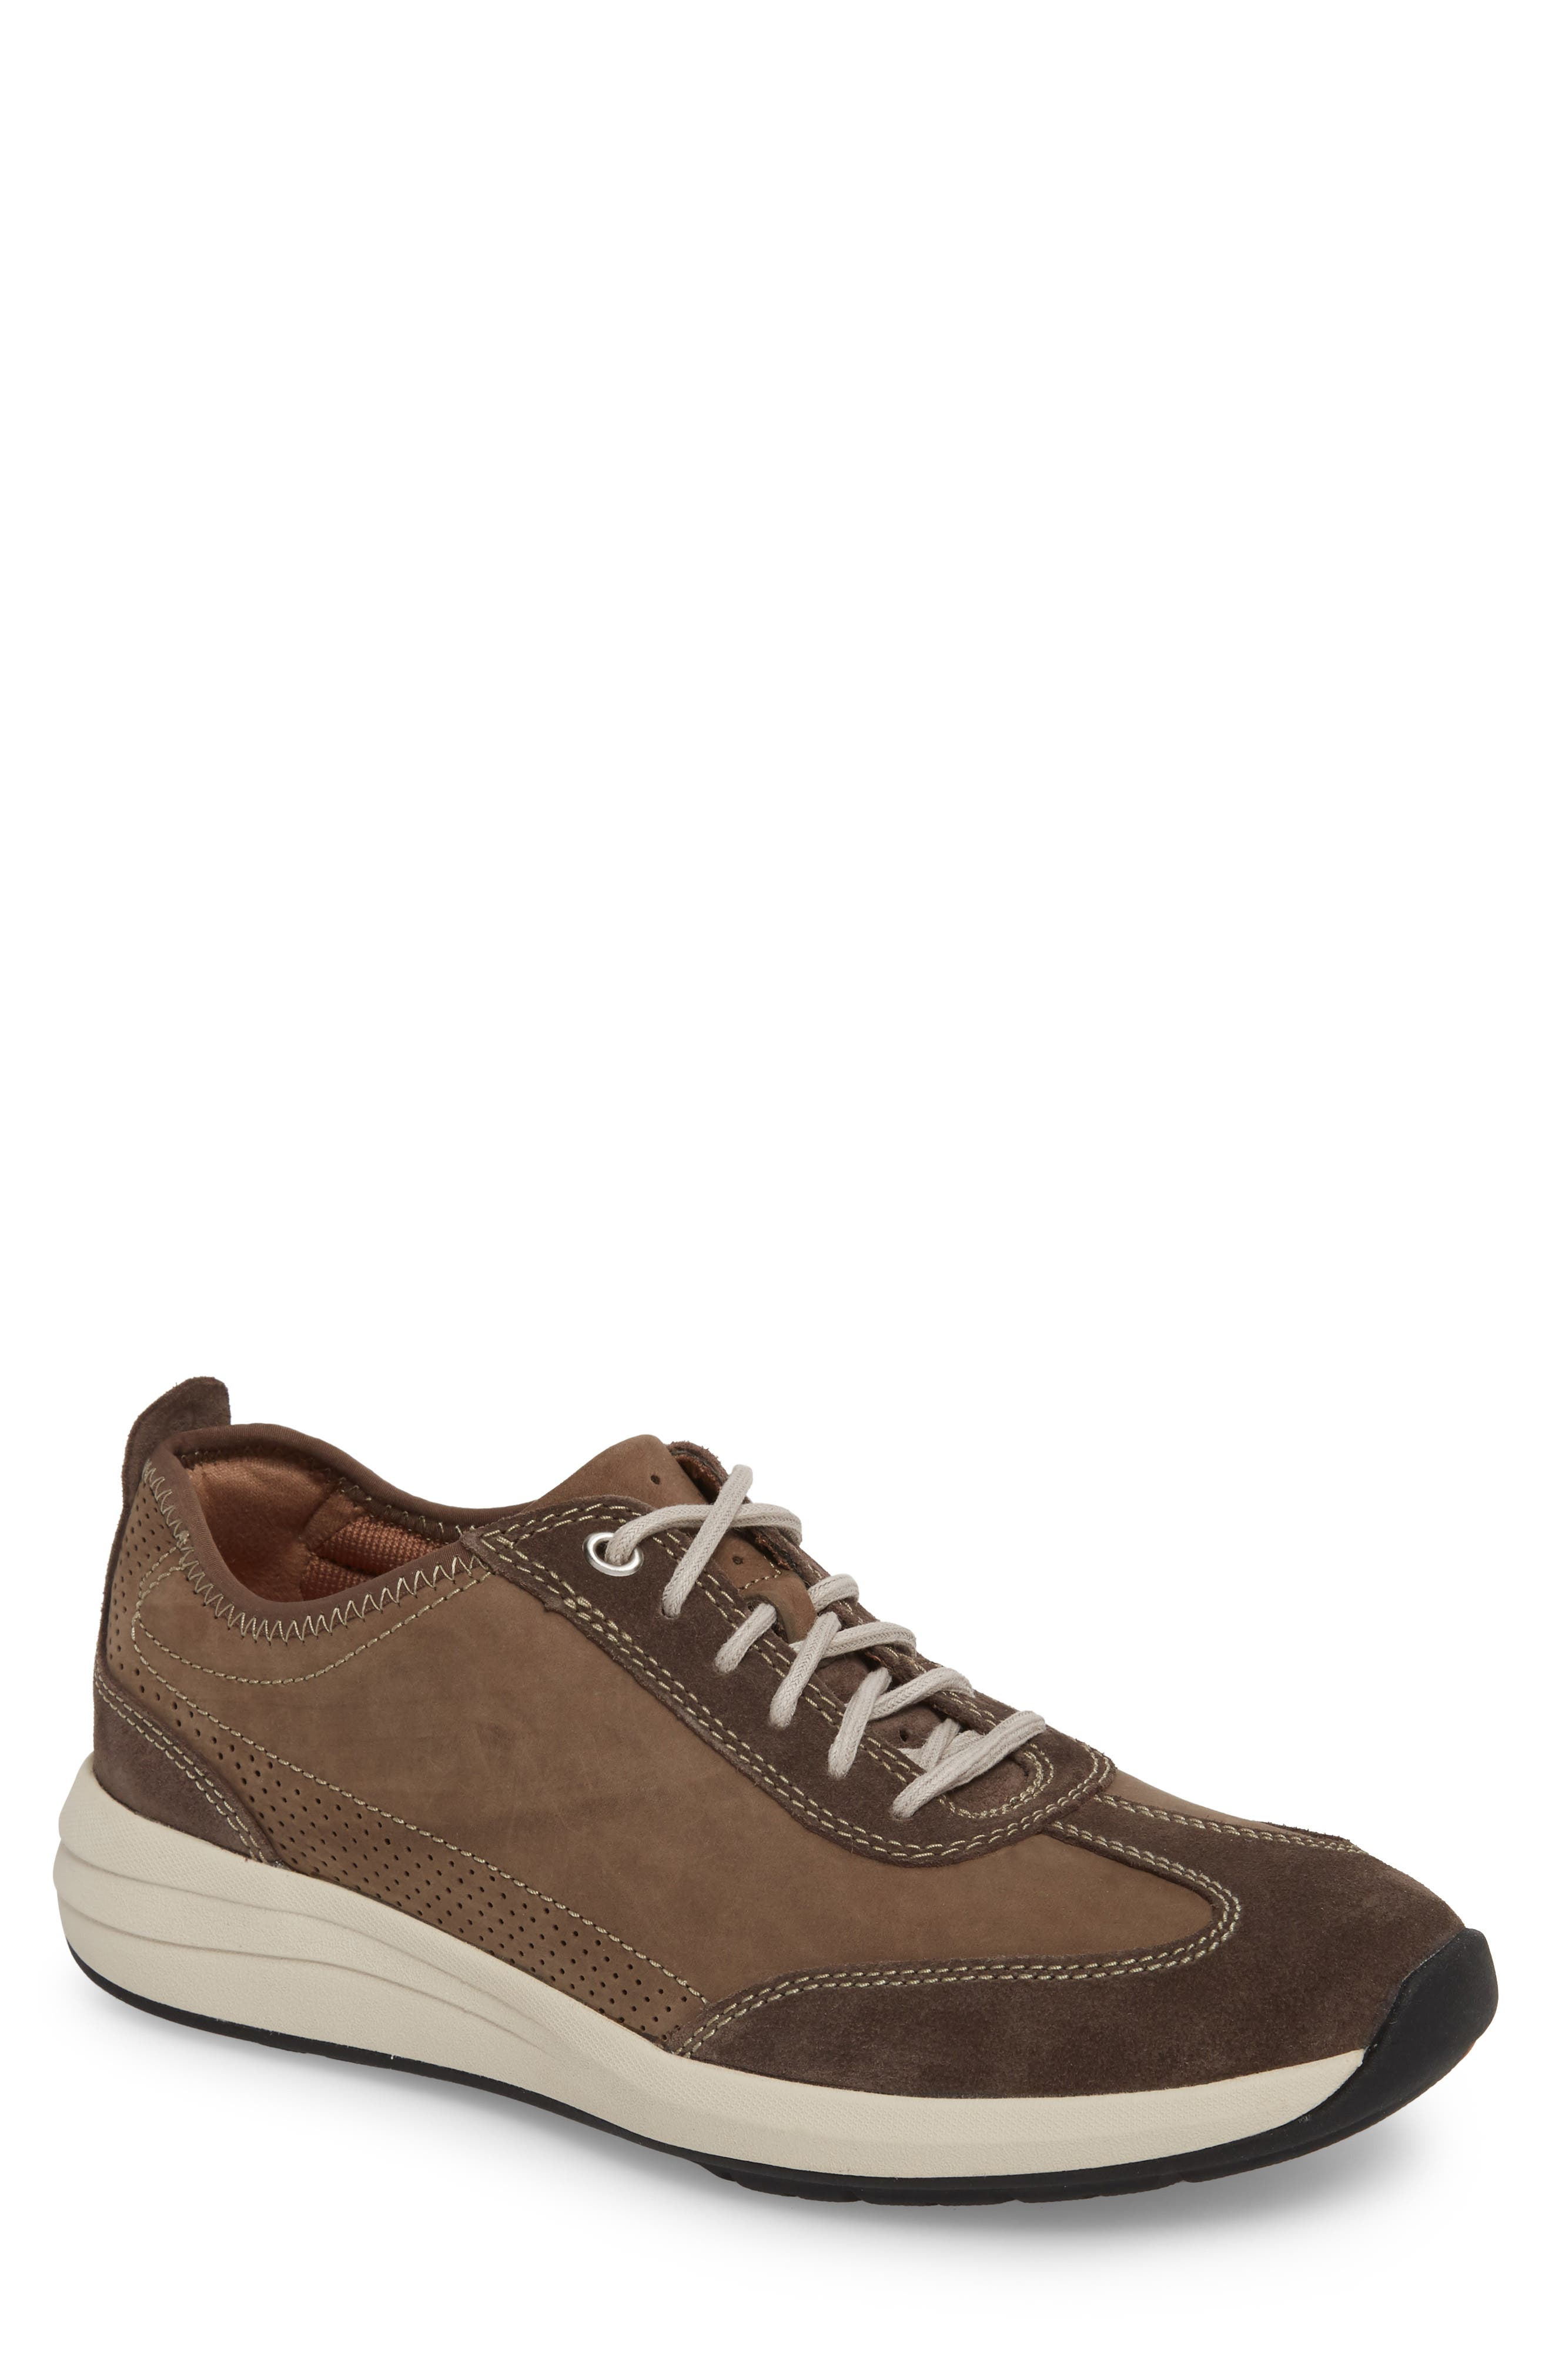 Clarks<sup>®</sup> Un Coast Low Top Sneaker,                             Main thumbnail 1, color,                             279